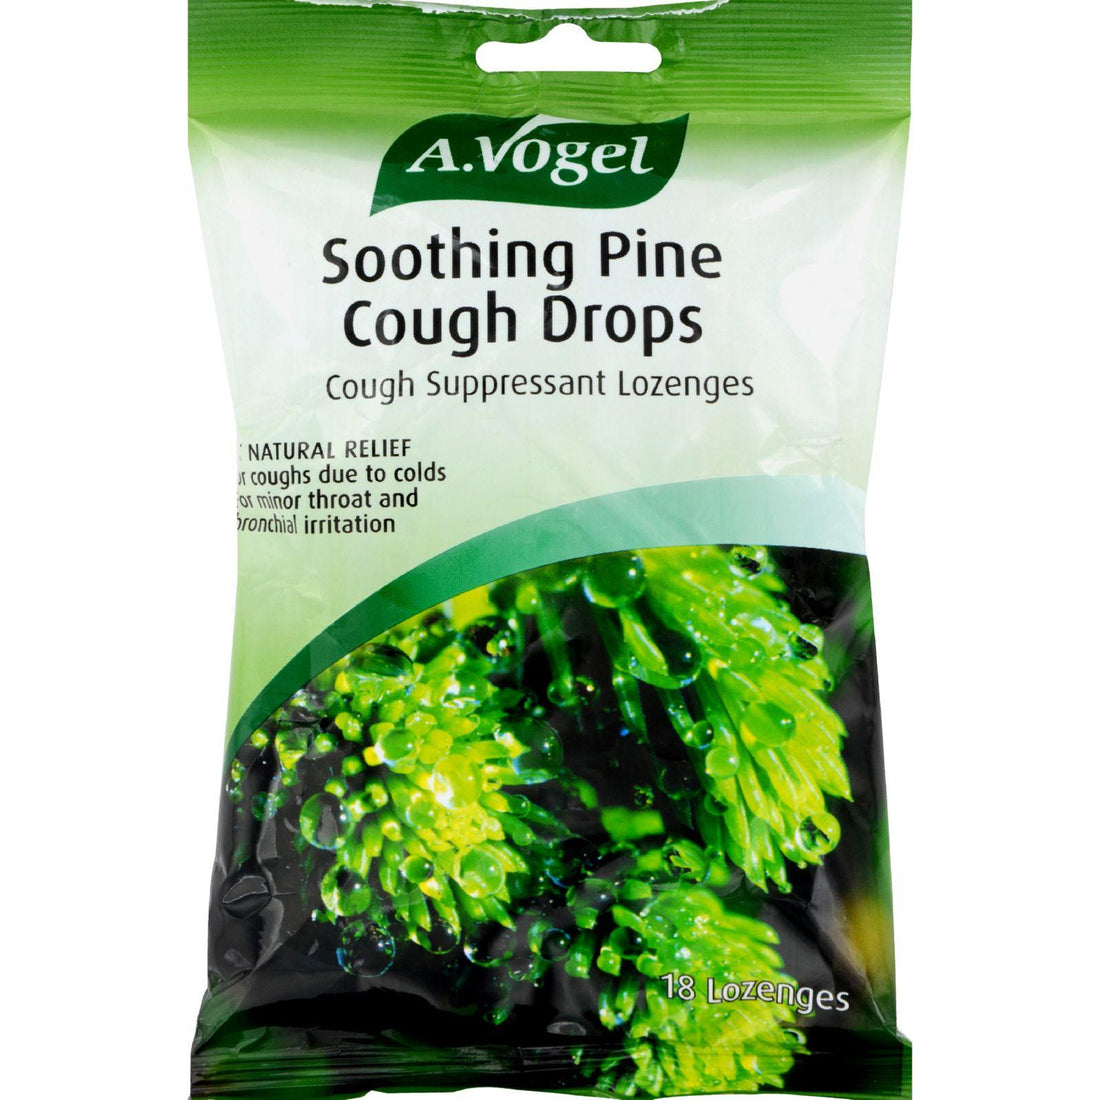 Mother Mantis: A Vogel Soothing Pine Cough Drops - 16 Lozenges A Vogel